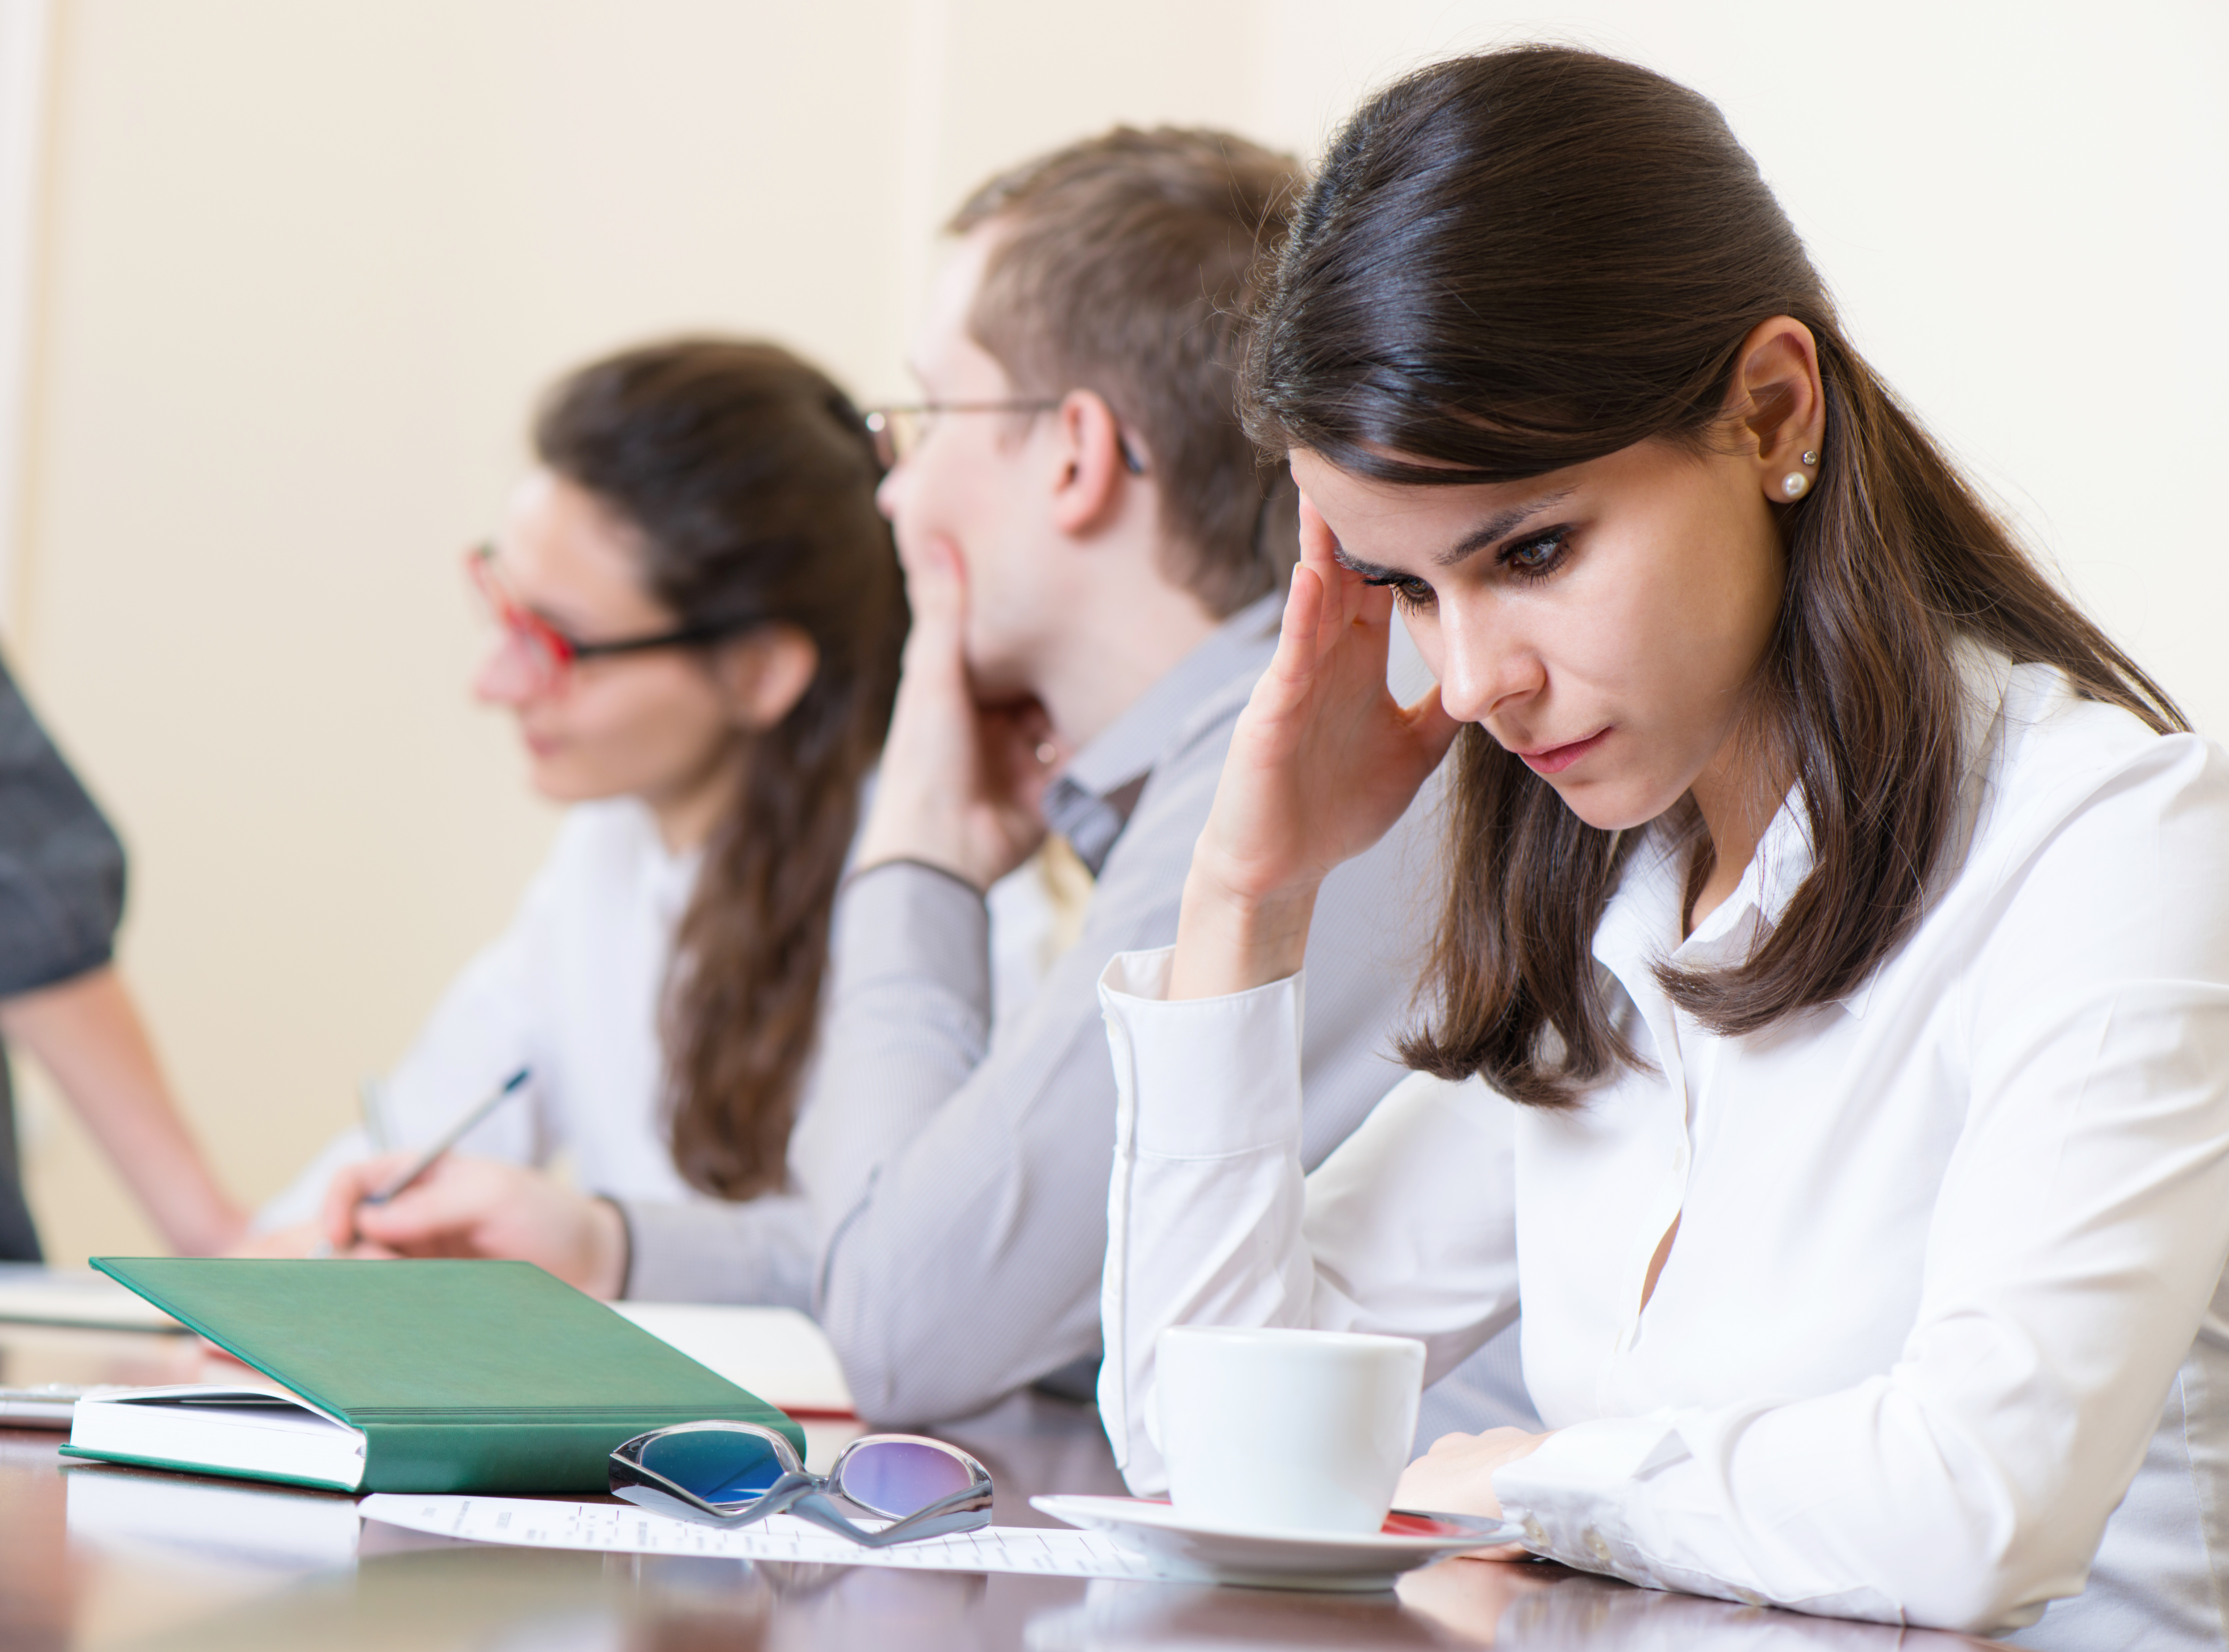 Young tired business woman with headache sitting at seminar